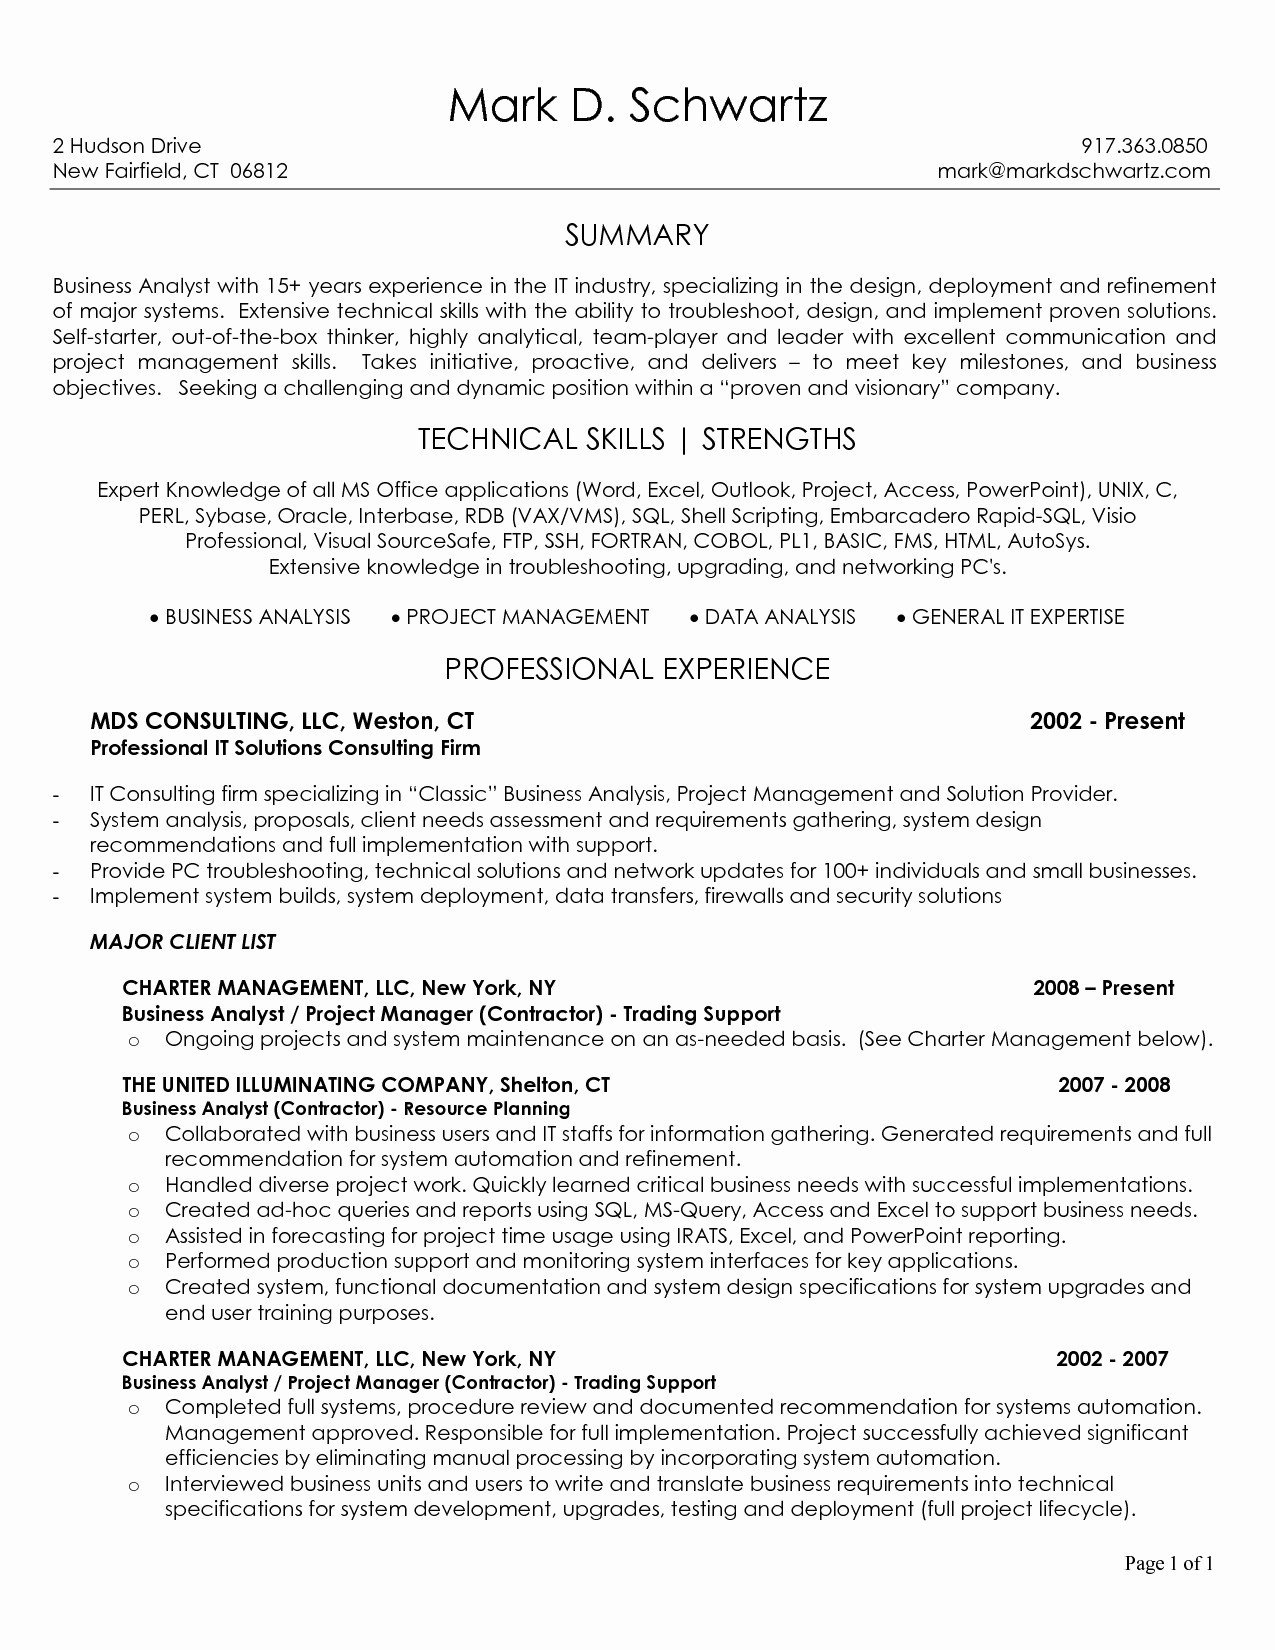 Data Analysis Resume - Business Analyst Resume Sample Free Inspirationa Data Analyst Resume